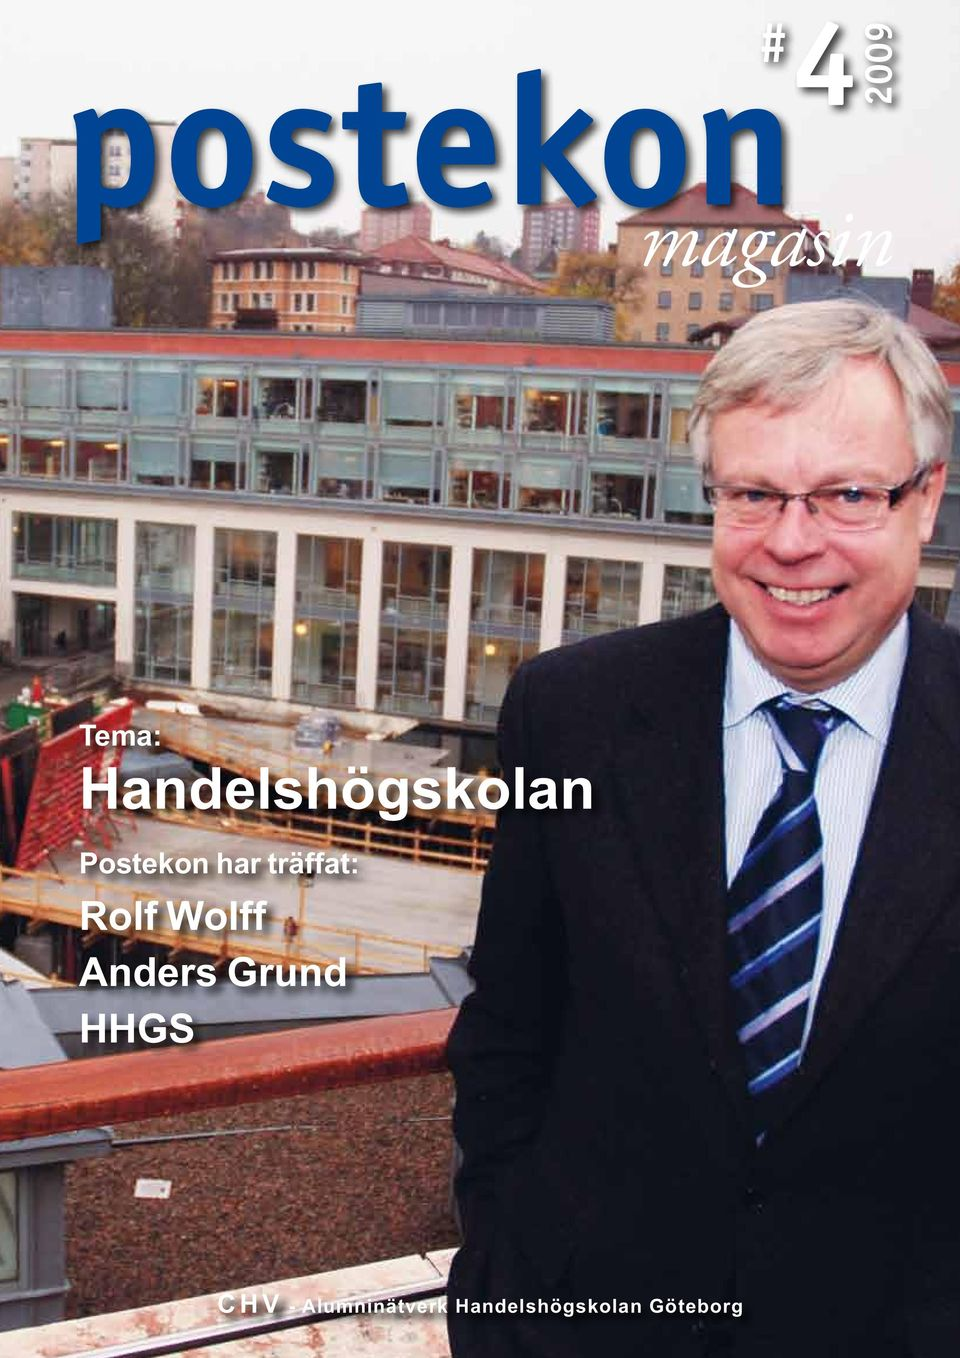 Wolff Anders Grund HHGS 1 POSTEKON MAGASIN